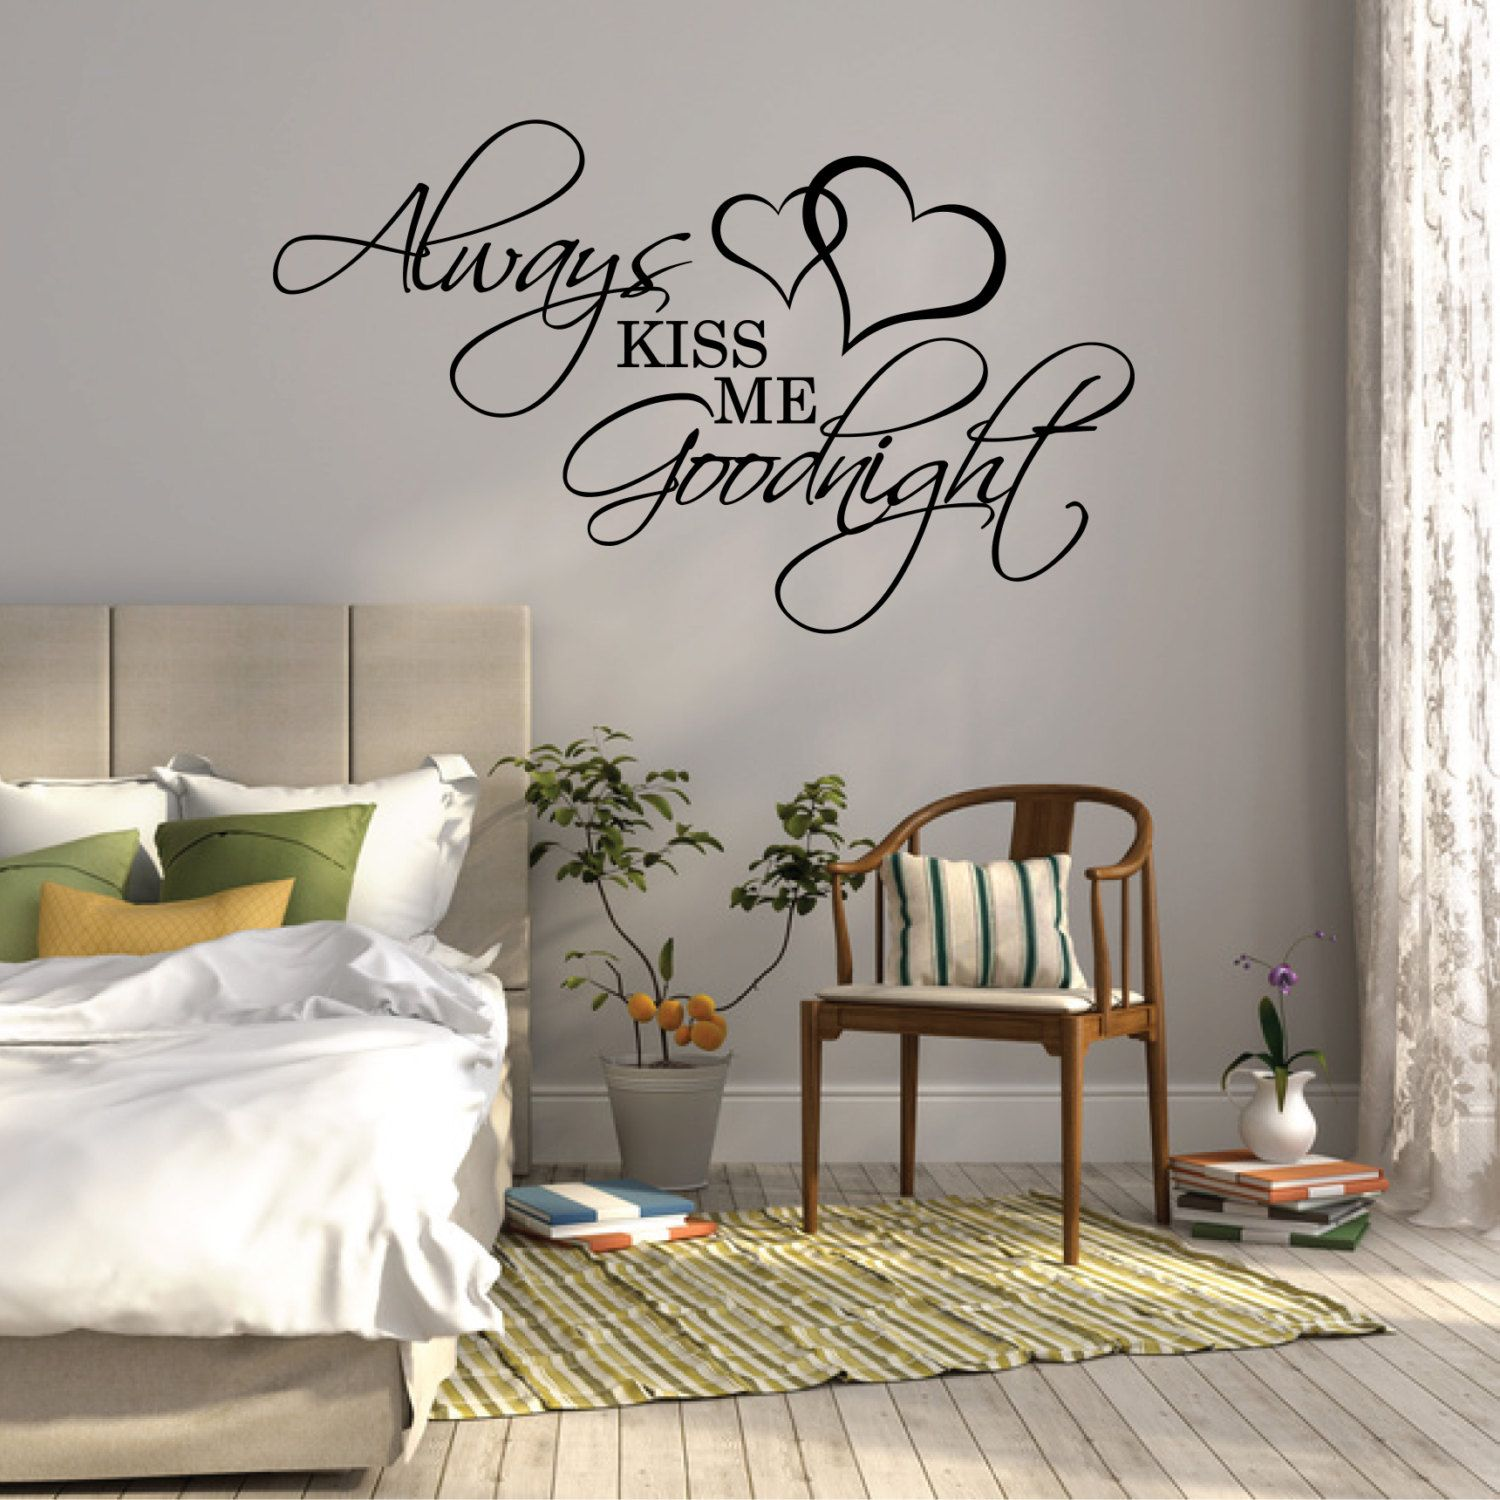 Wall sticker quote always kiss me goodnight over bed for Room decor ideas quotes